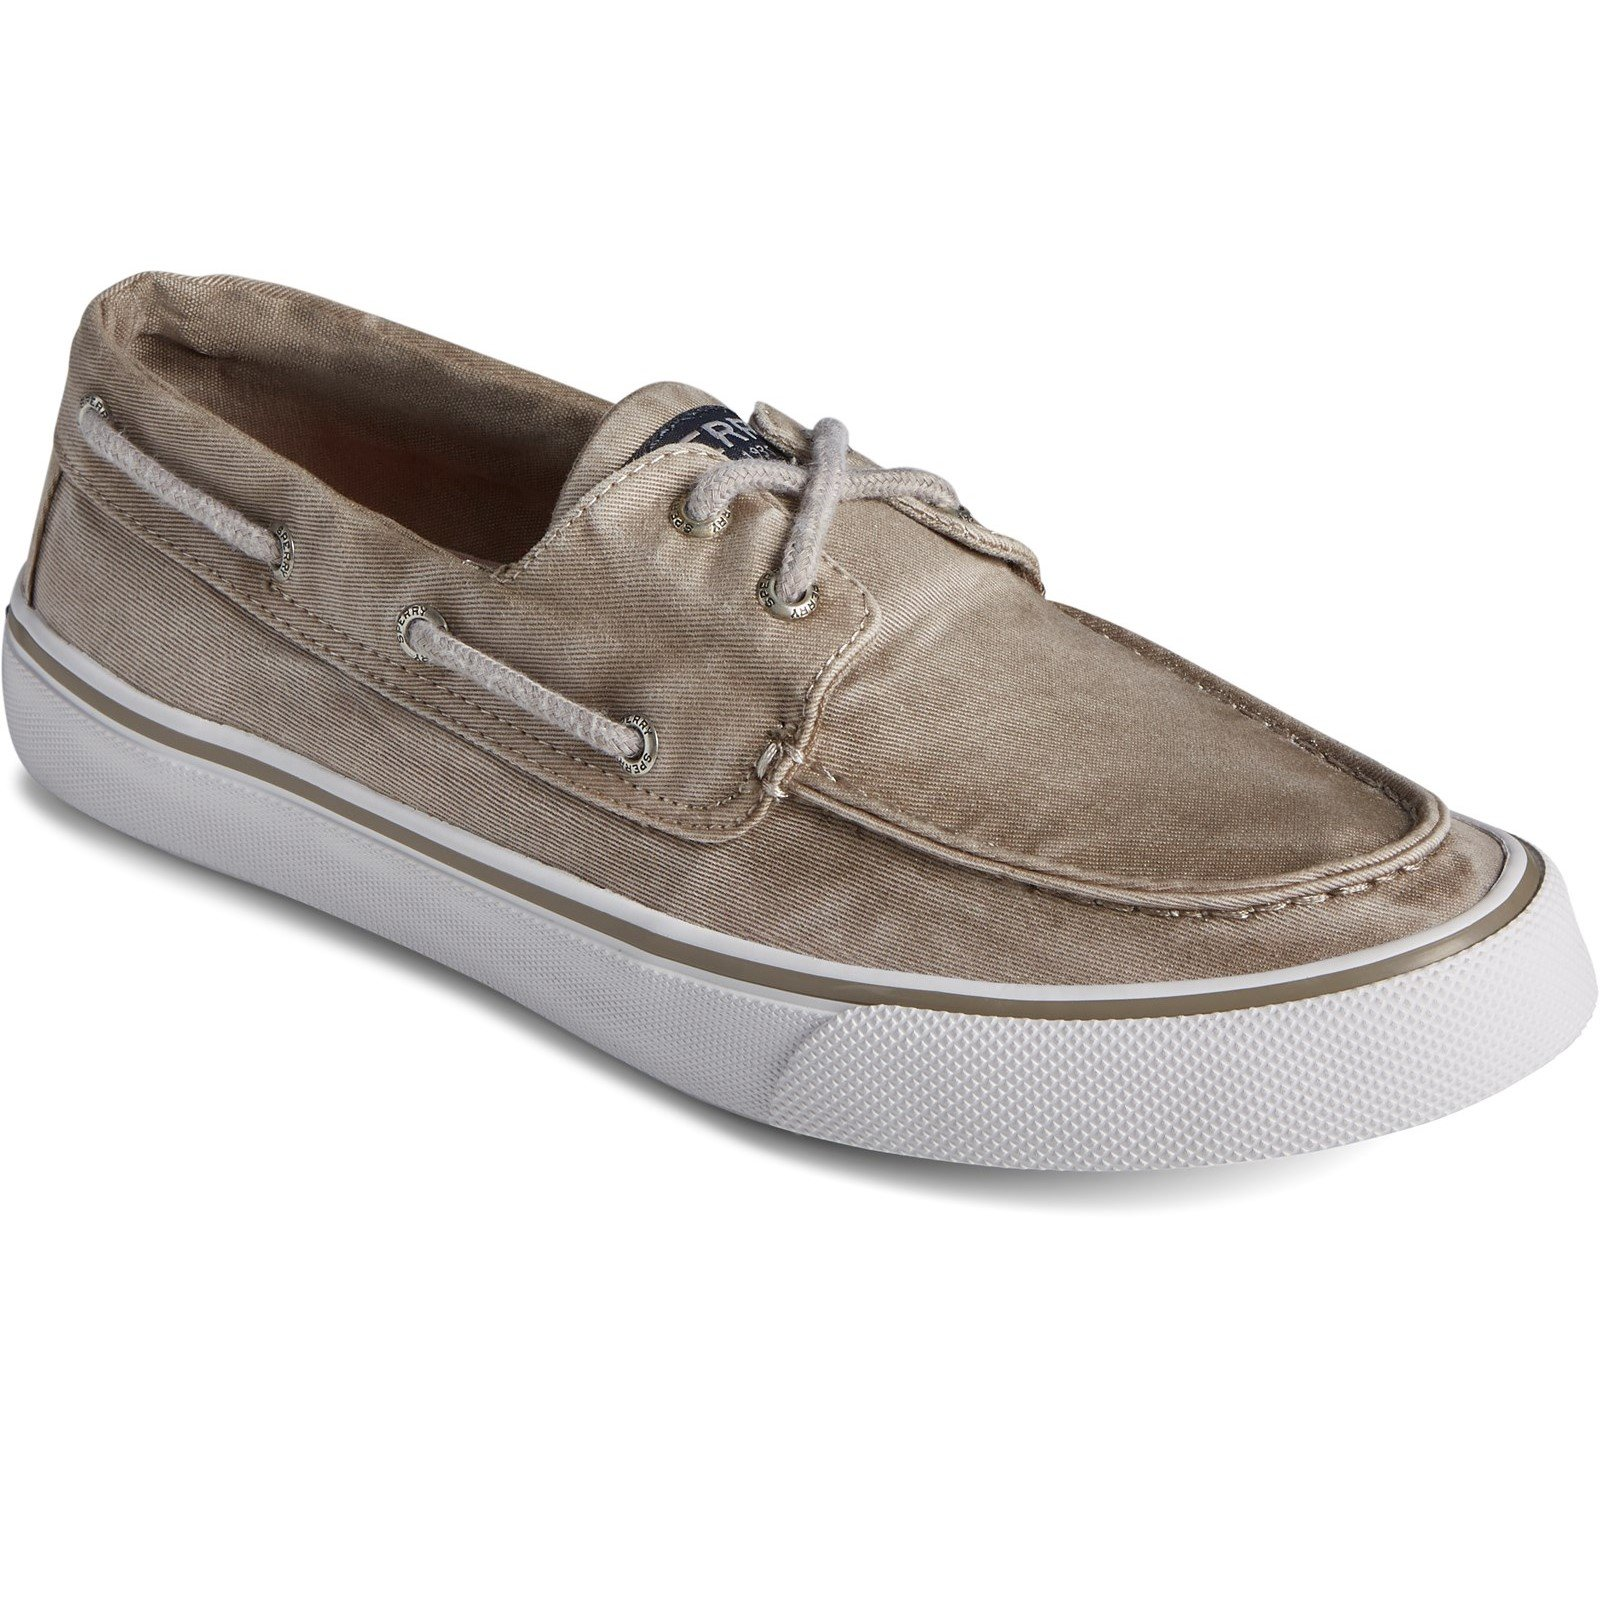 Sperry Men's Bahama II Boat Shoe Various Colours 32923 - Taupe 10